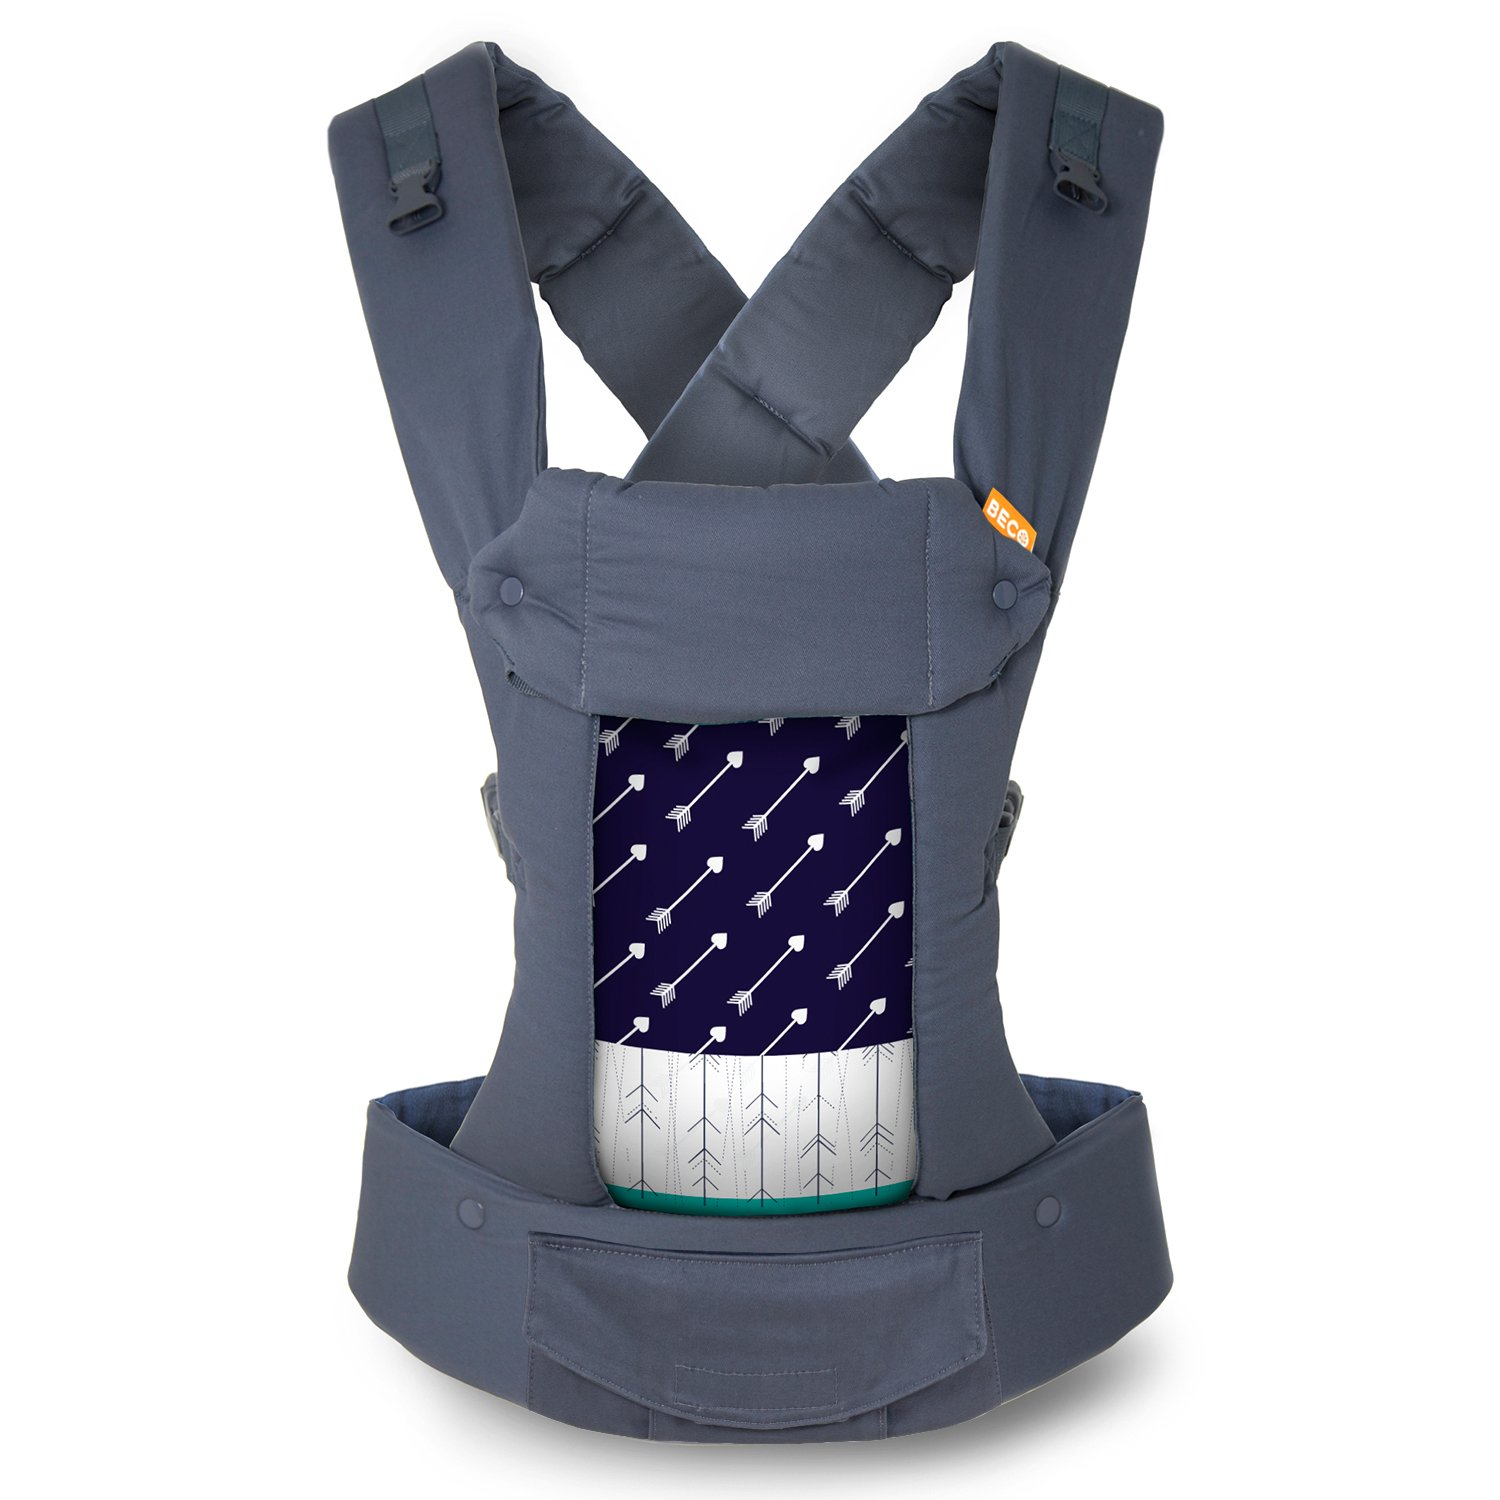 Gemini Performance Baby Carrier By Beco (One Size, Arrow with Pocket)